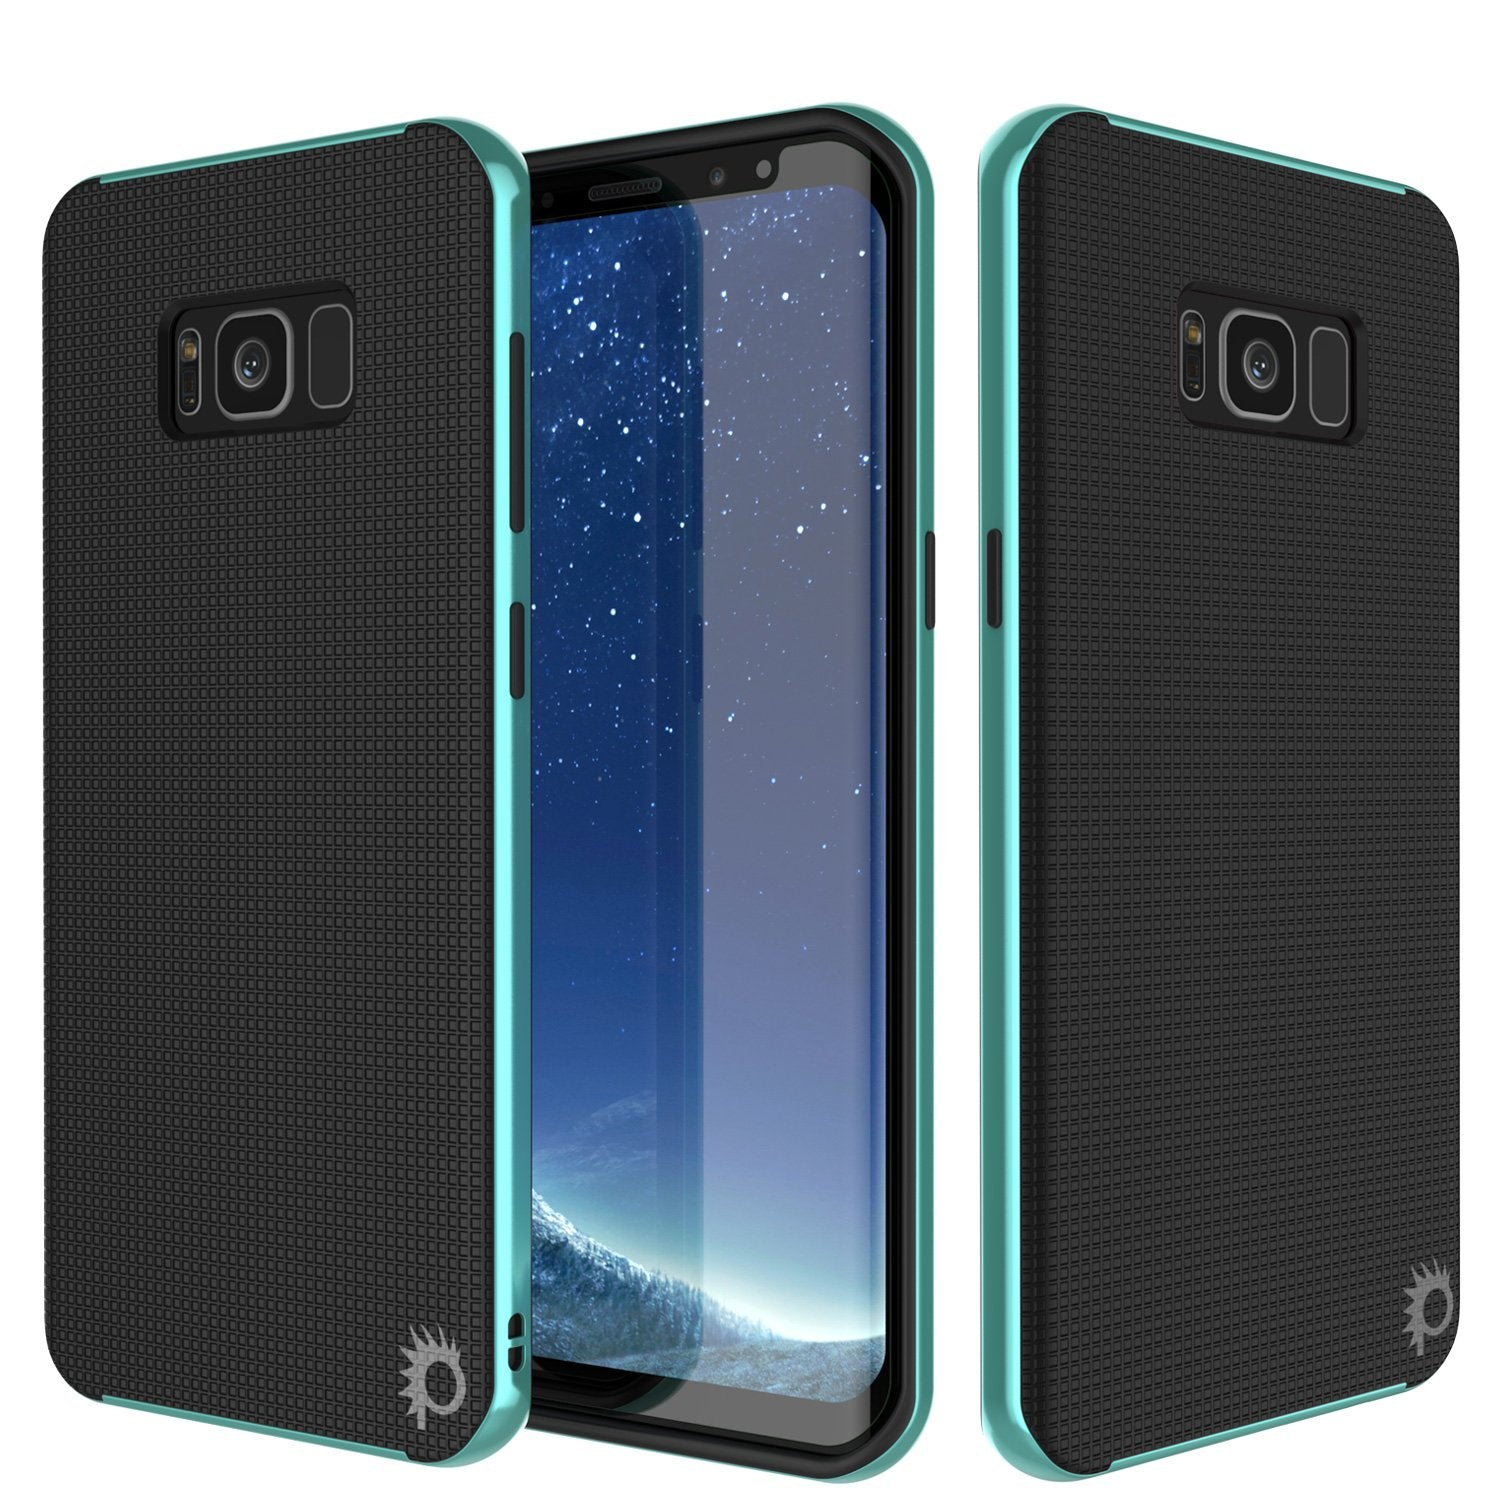 Galaxy S8 Case, PunkCase Stealth Series Hybrid Shockproof Teal Cover